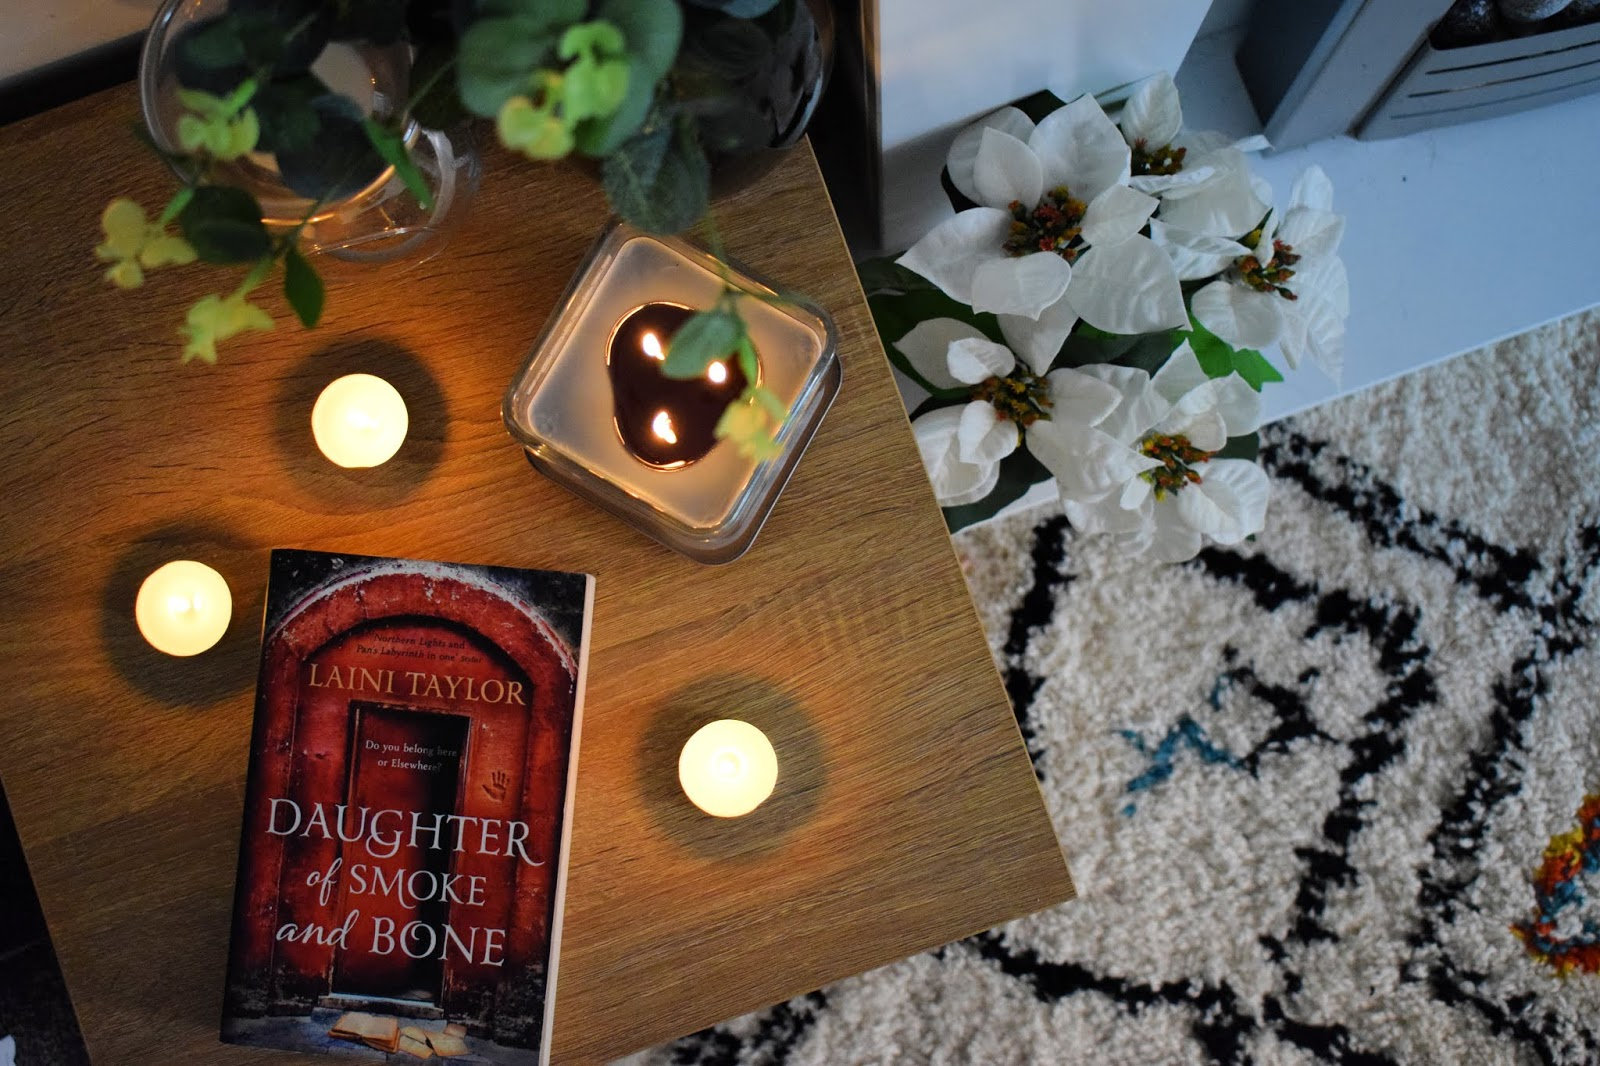 Daughter of smoke and bone - Laini Taylor - book review